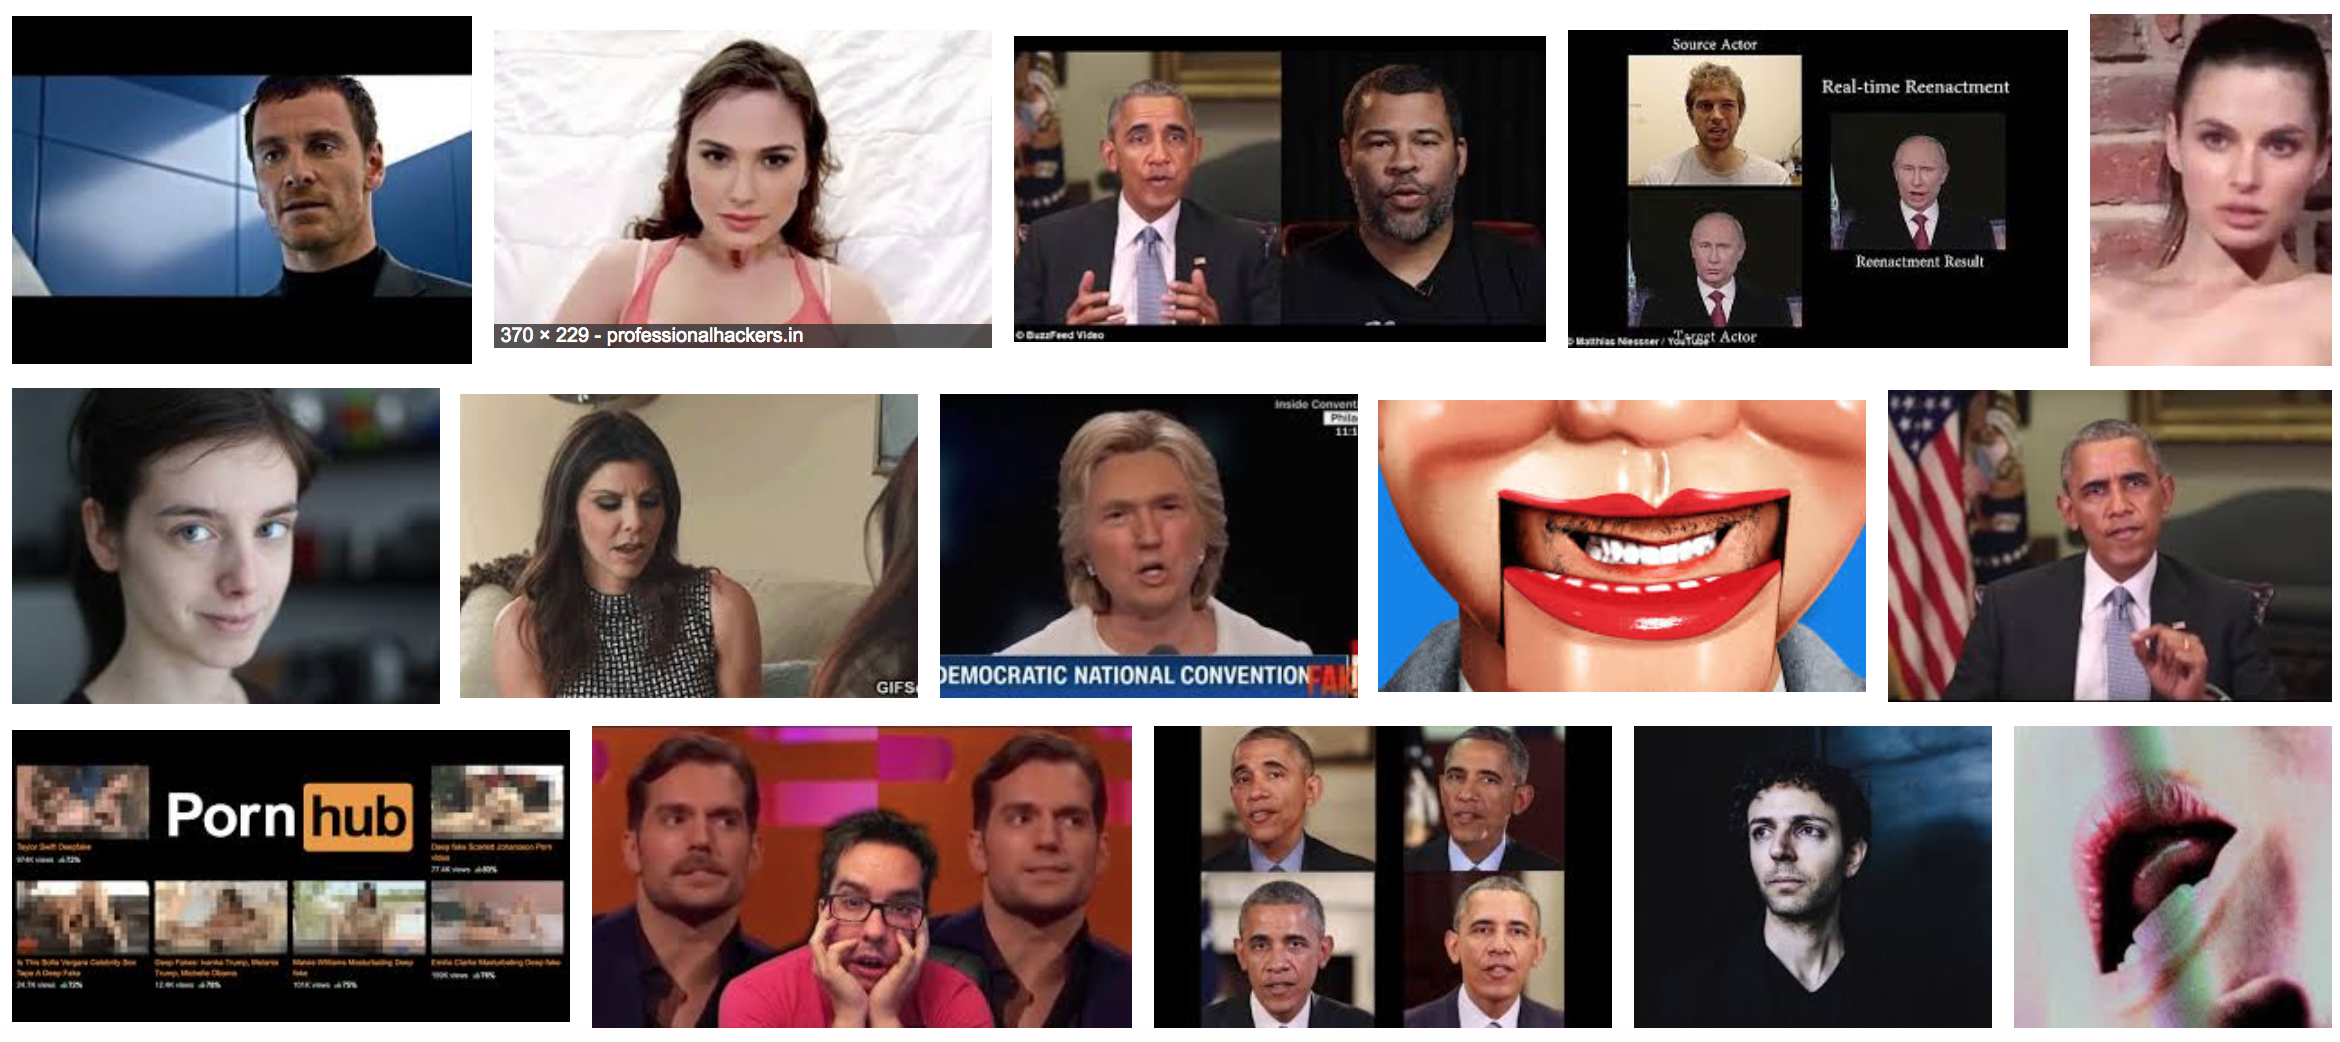 Deepfakes and Synthetic Media: What should we fear? What can we do